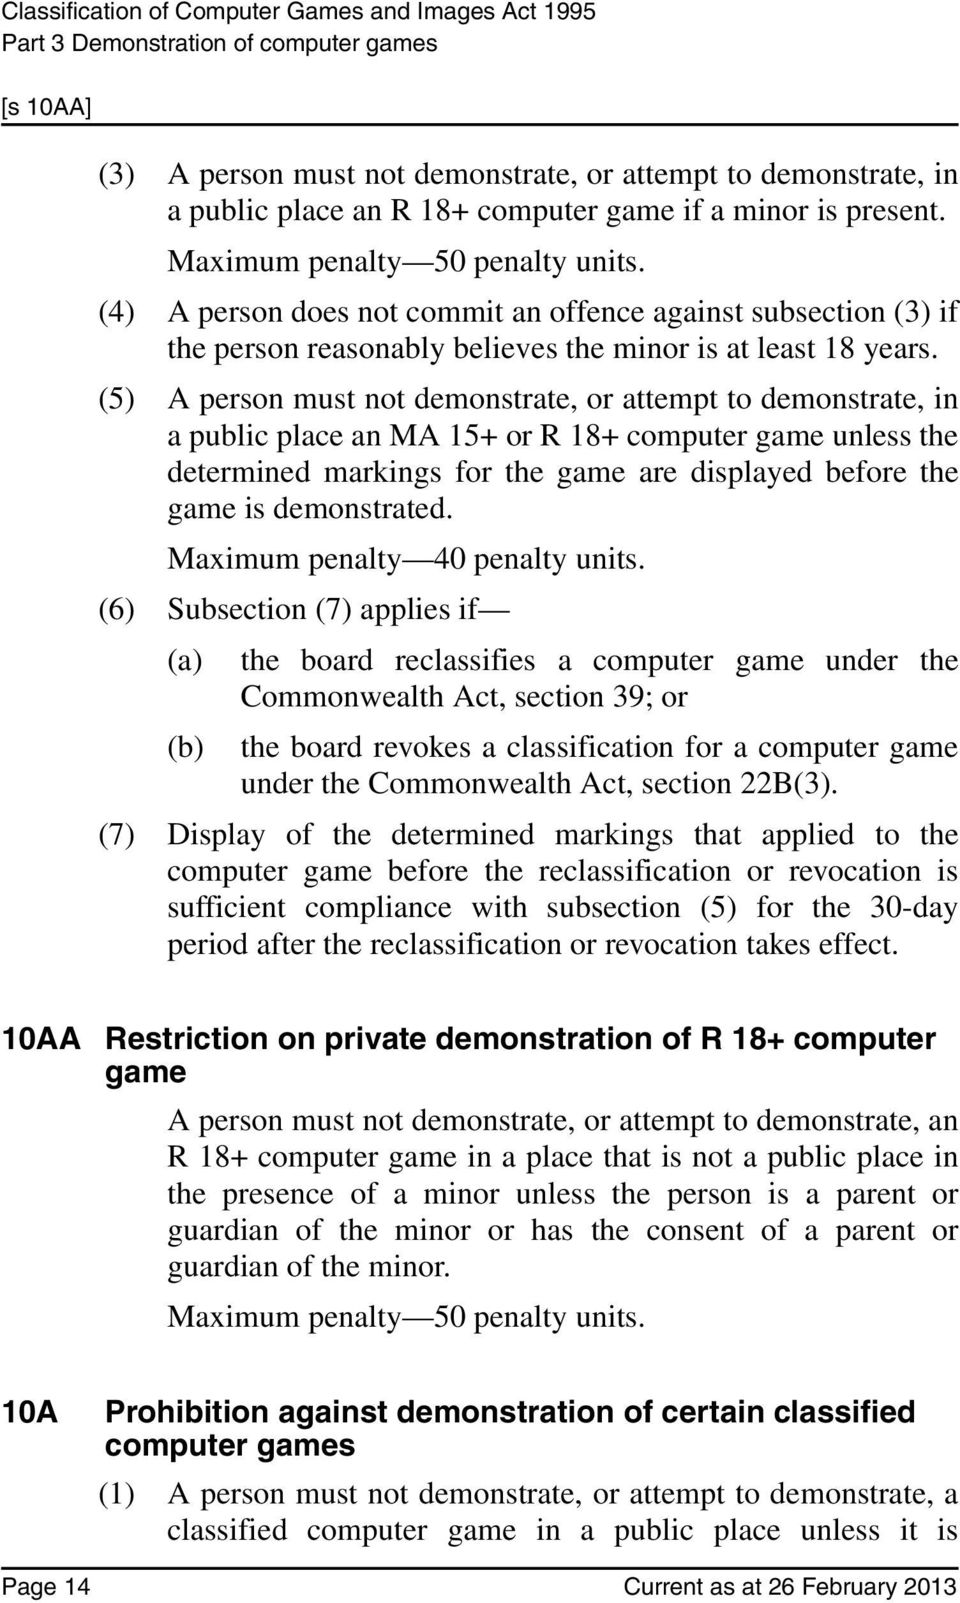 (5) A person must not demonstrate, or attempt to demonstrate, in a public place an MA 15+ or R 18+ computer game unless the determined markings for the game are displayed before the game is